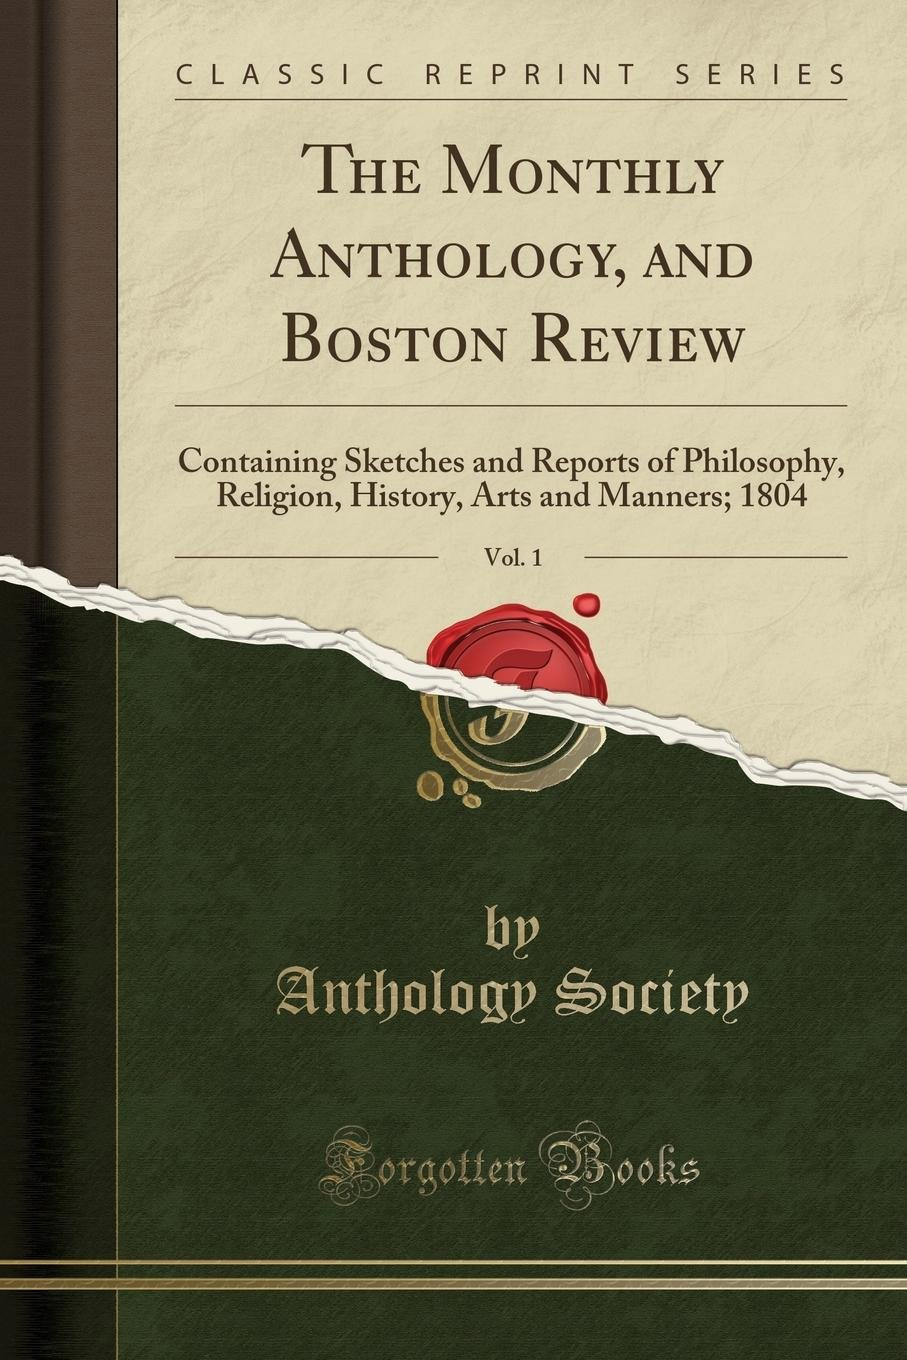 The Monthly Anthology, and Boston Review, Vol. 1: Containing Sketches and Reports of Philosophy, Religion, History, Arts and Manners; 1804 (Classic Reprint) pdf epub